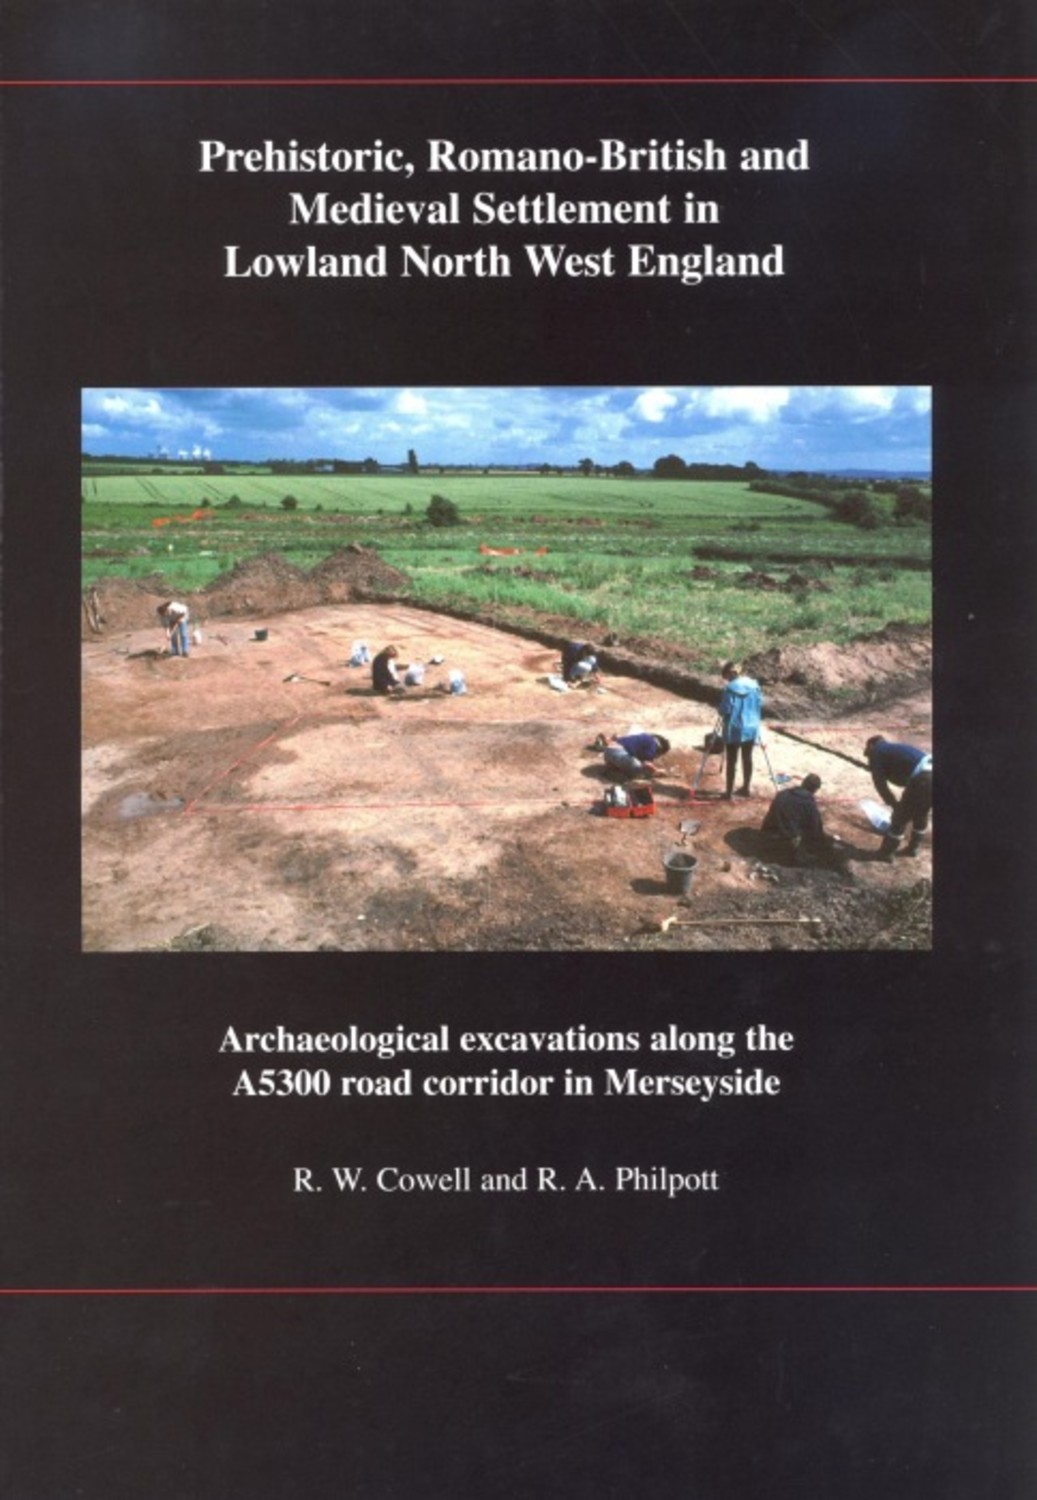 Prehistoric, Romano-British and Medieval Settlement in Lowland North West England